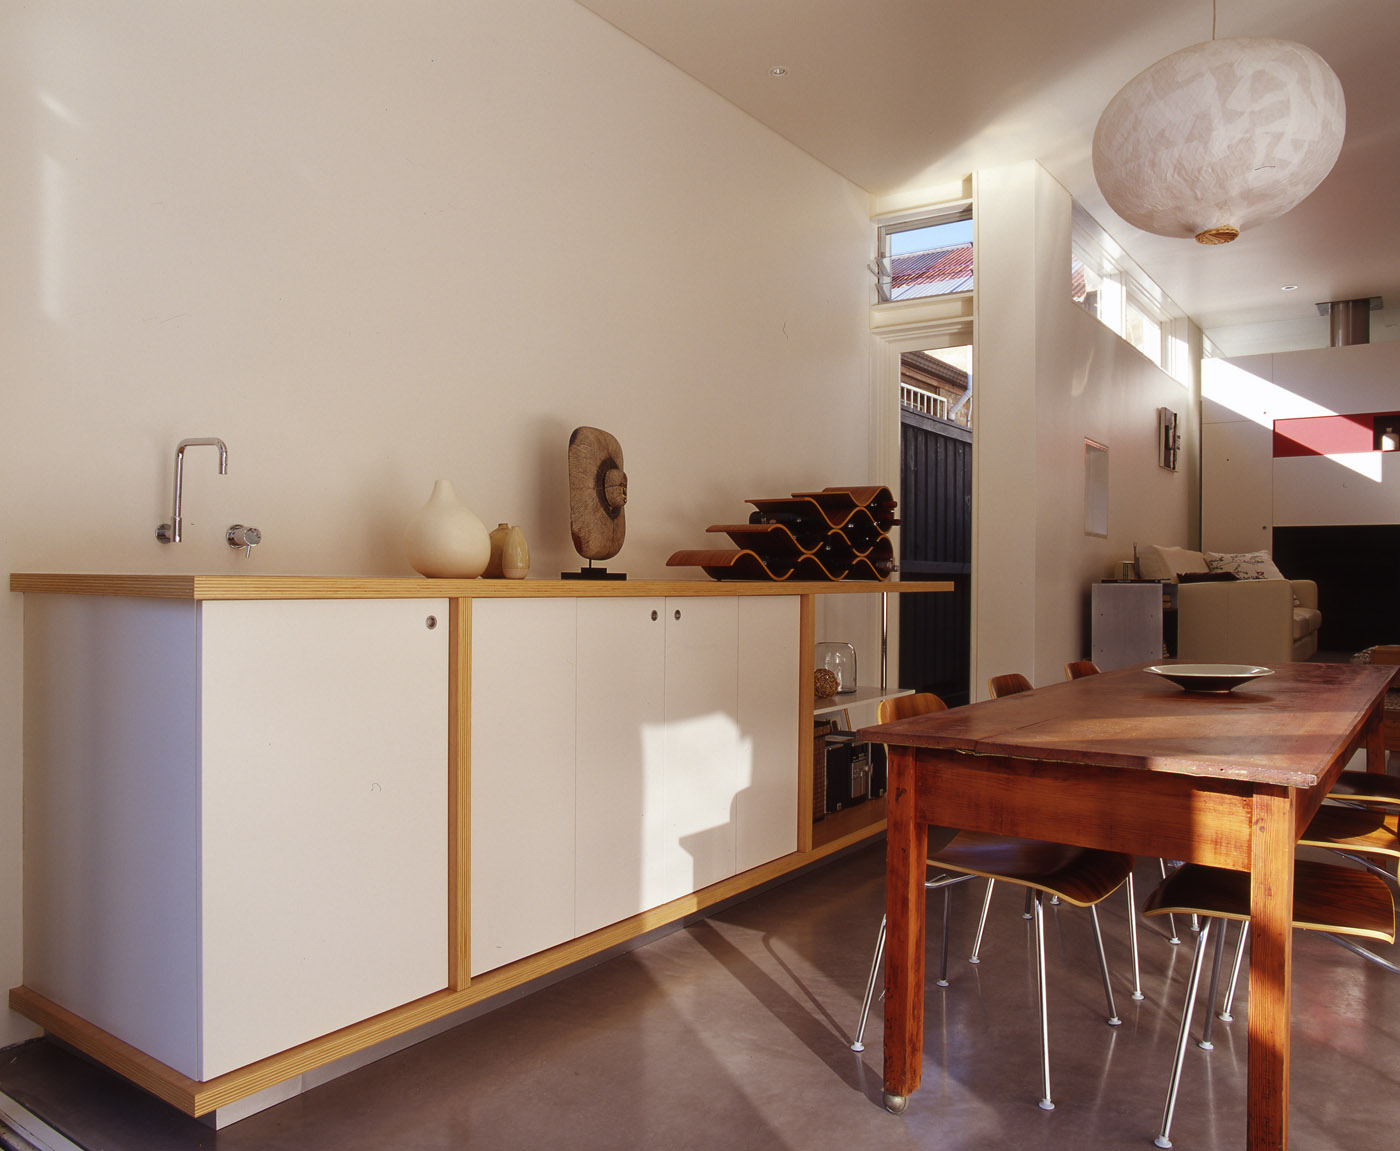 Wake Murphy House by Sydney award winning residential architecture office Sam Crawford Architects. Multi purpose joinery unit